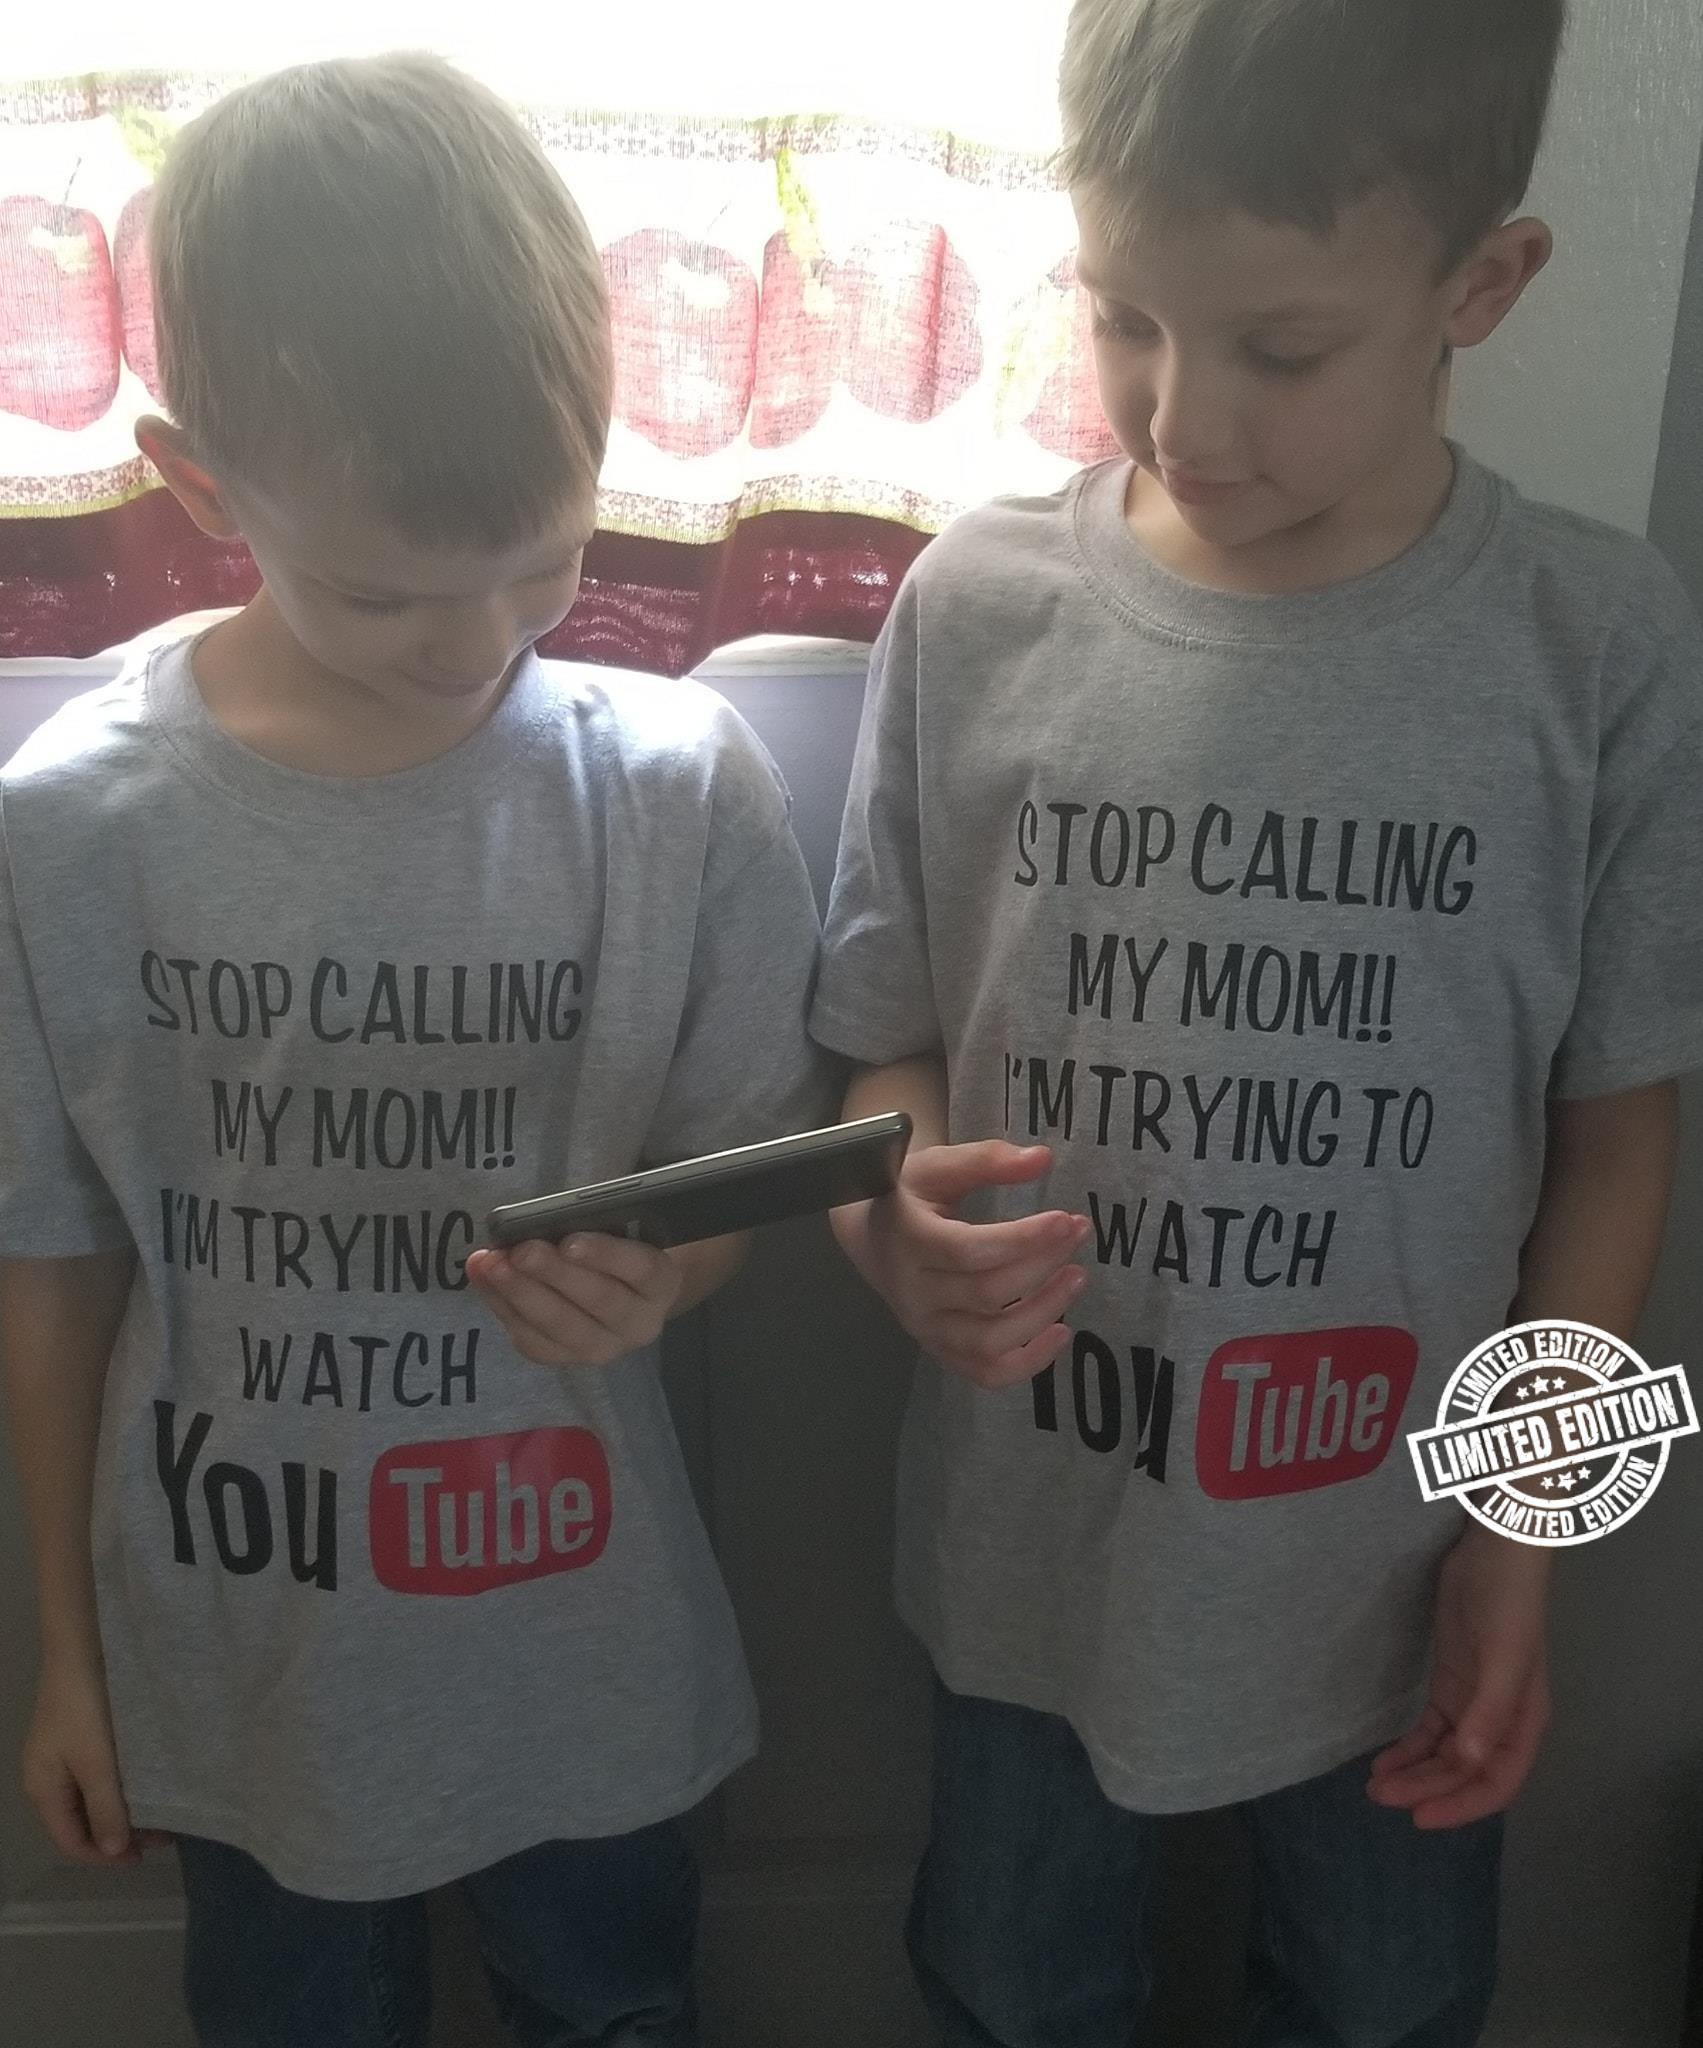 Stop calling my mom I'm trying watch Youtube shirt